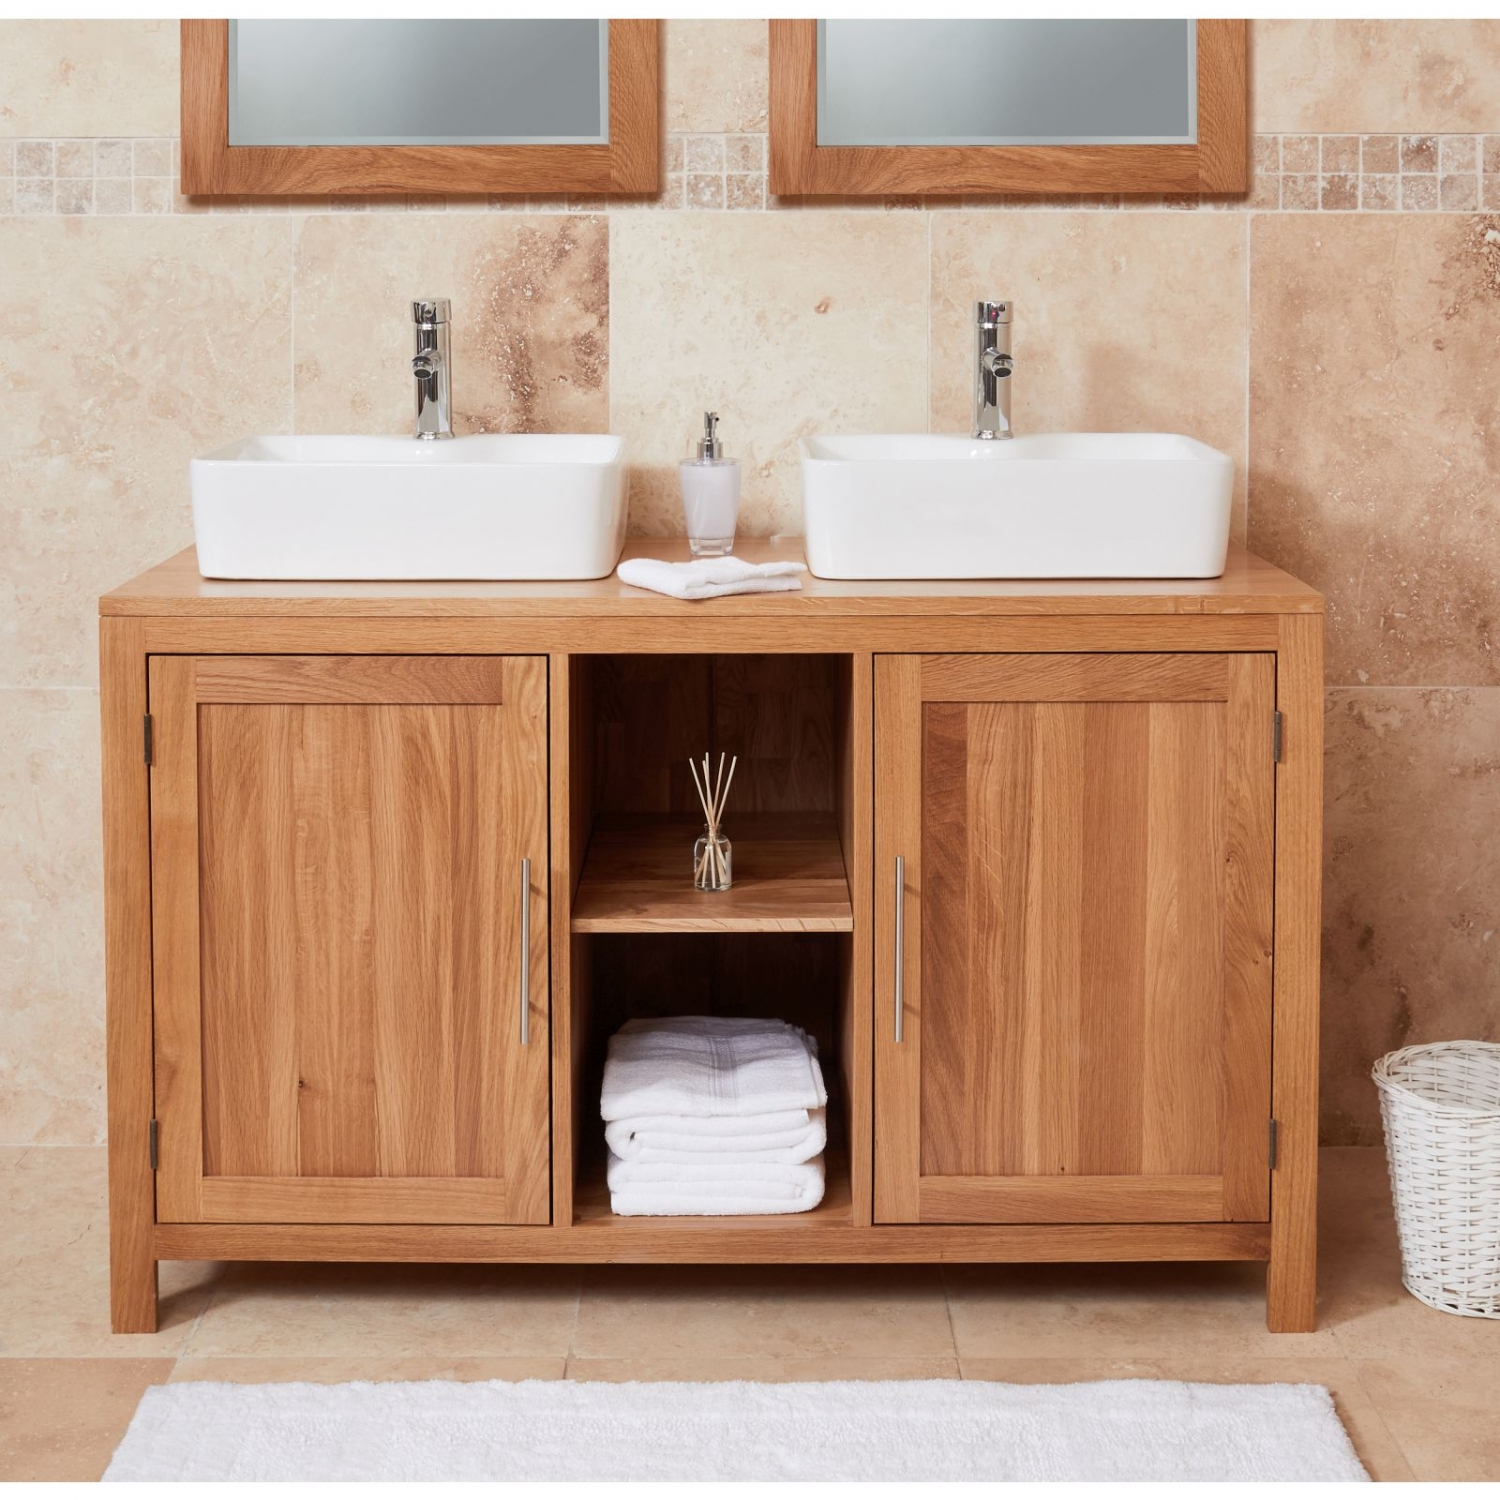 Fabulous Details About Conran Solid Oak Bathroom Furniture Two Door Dual Square Basin Sink Vanity Unit Home Remodeling Inspirations Genioncuboardxyz